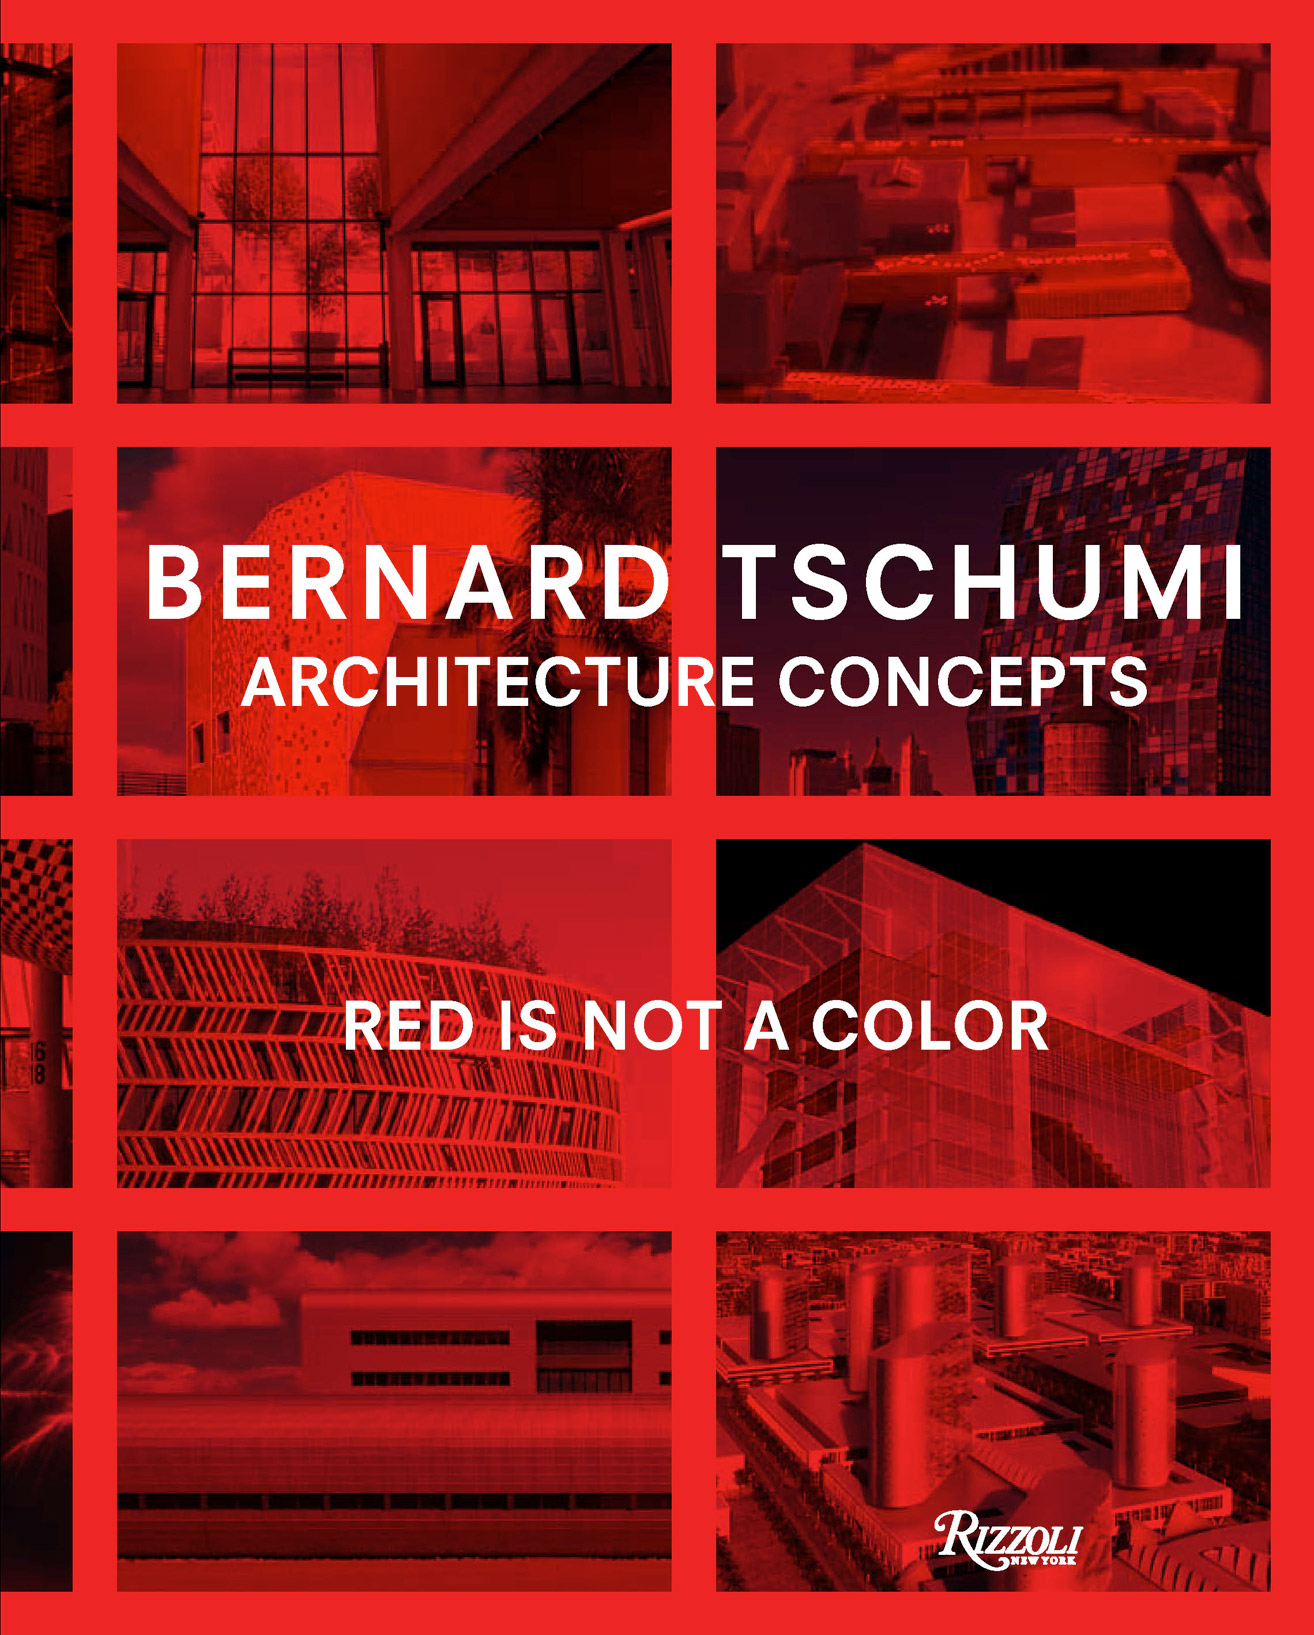 Book cover. Bernard Tschumi: Architecture Concepts: Red is Not a Color by Bernard Tschumi, Rizzoli New York, 2012